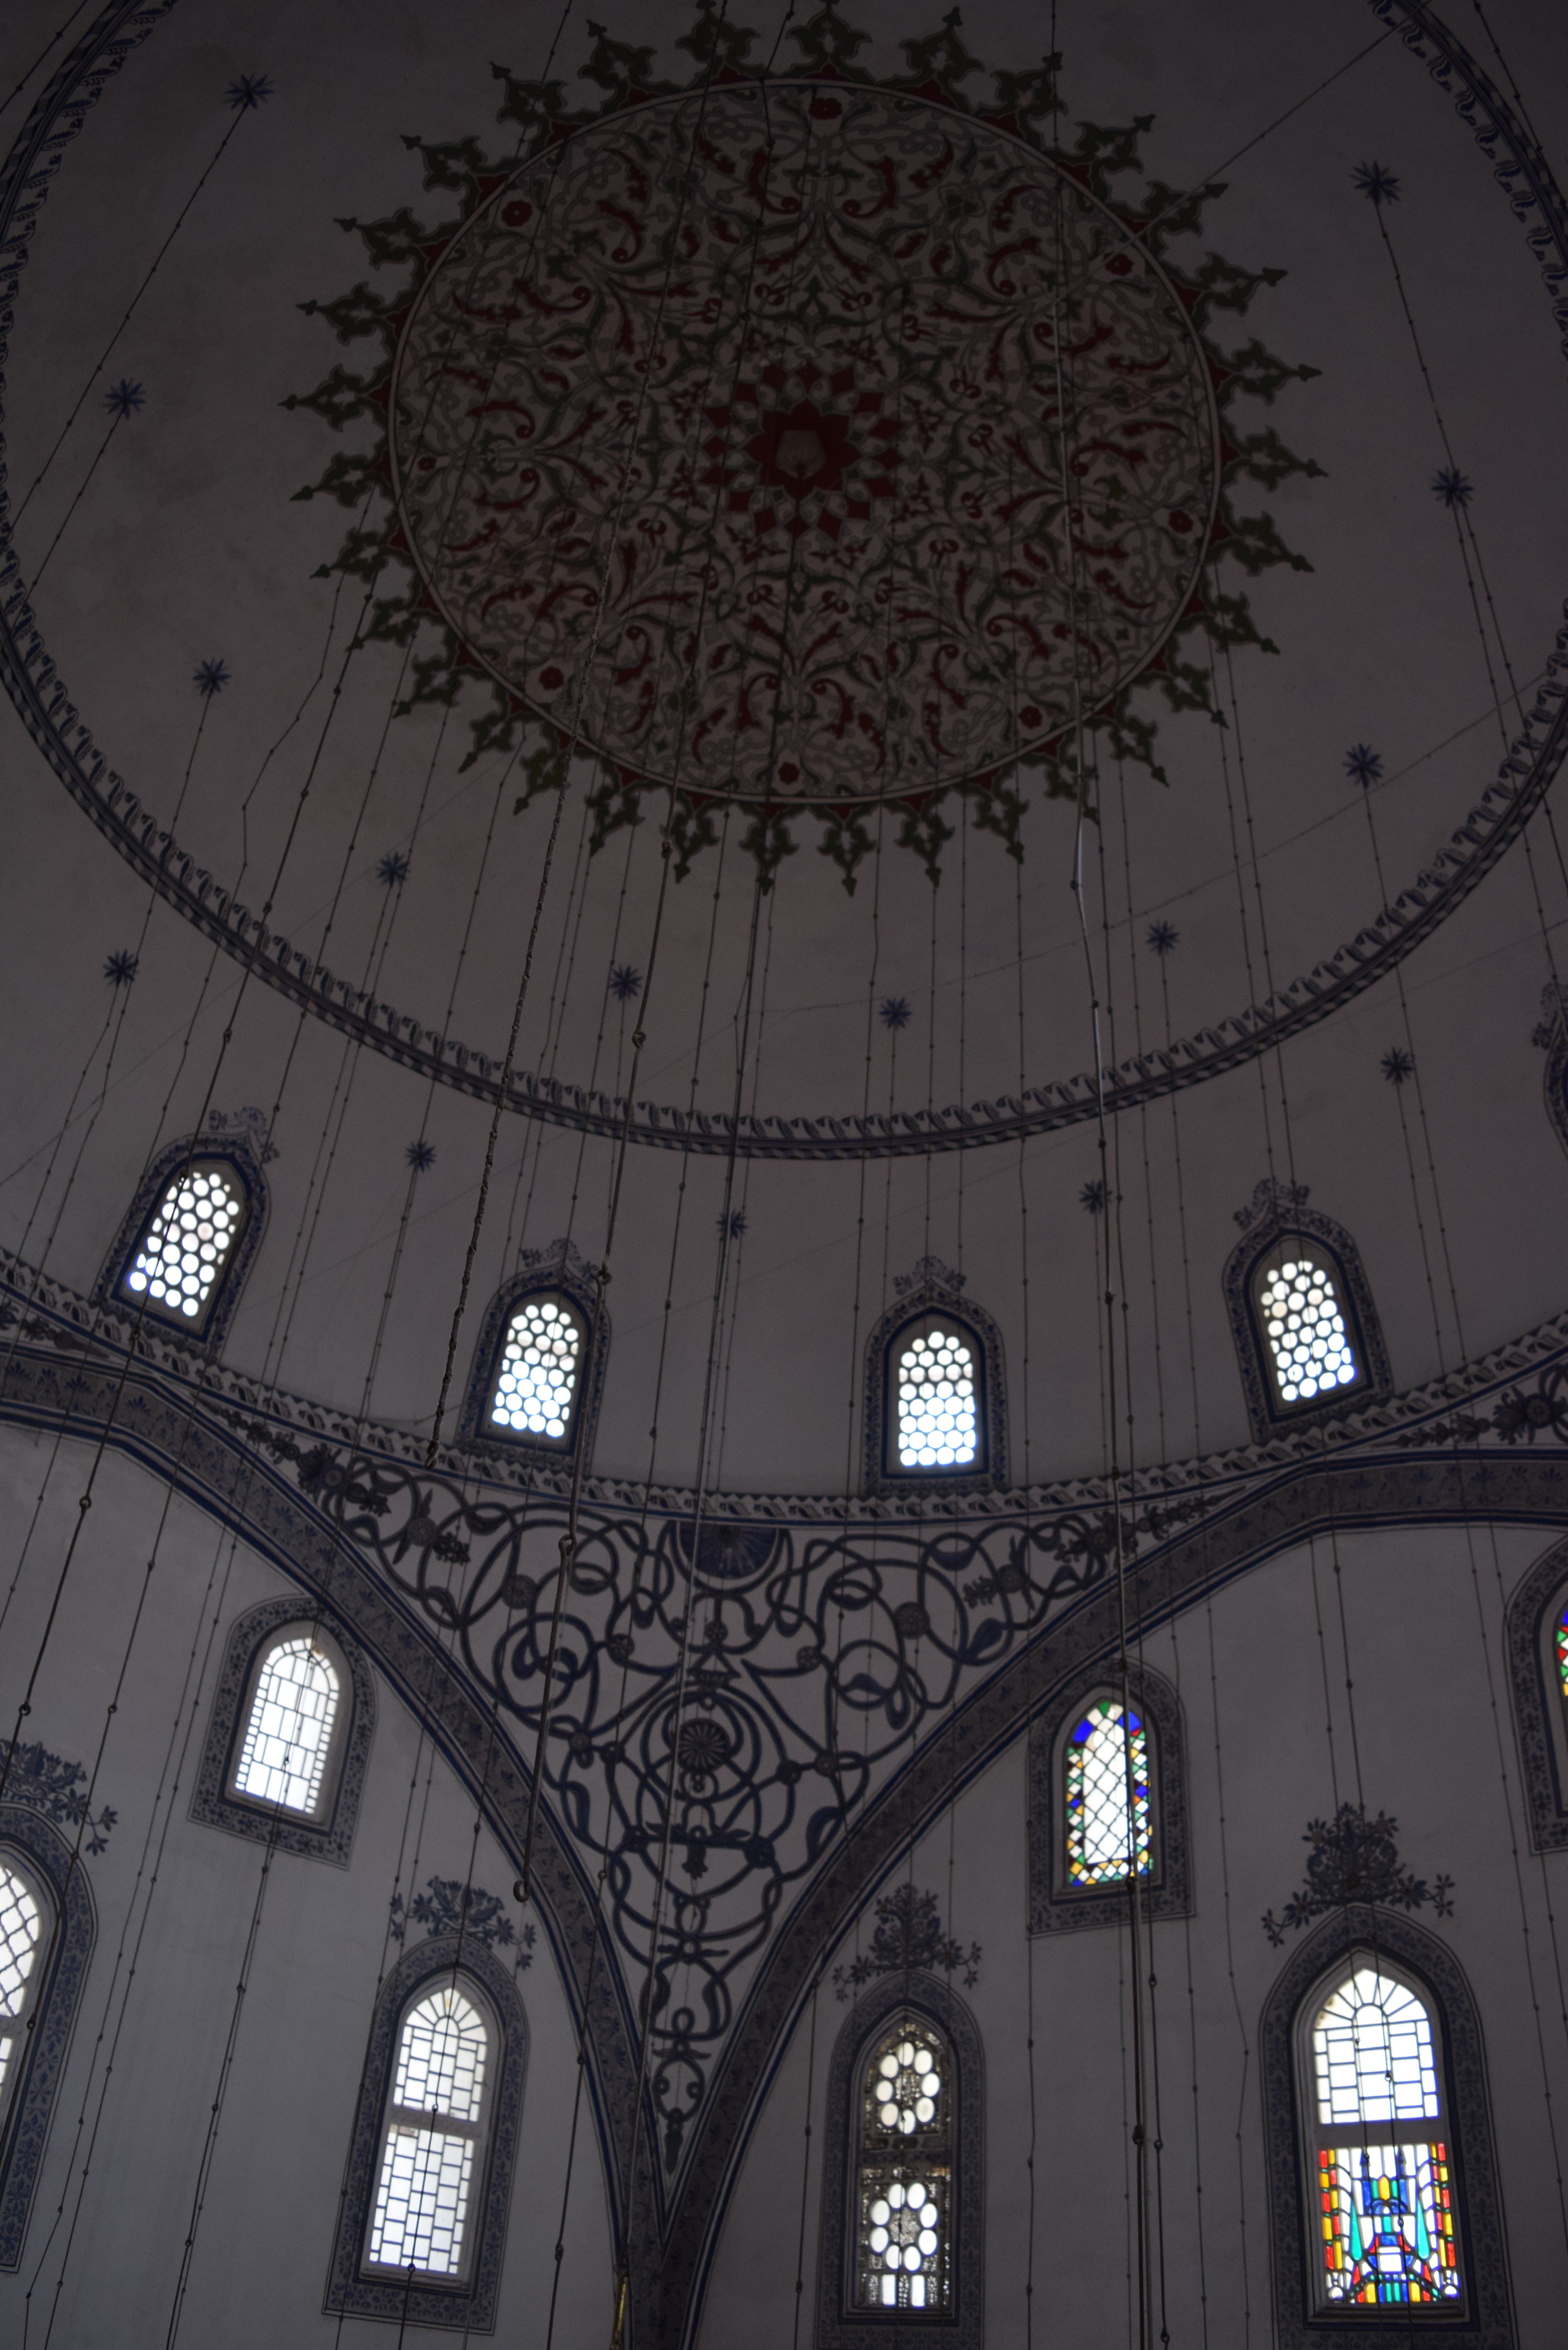 Interior of the mosque